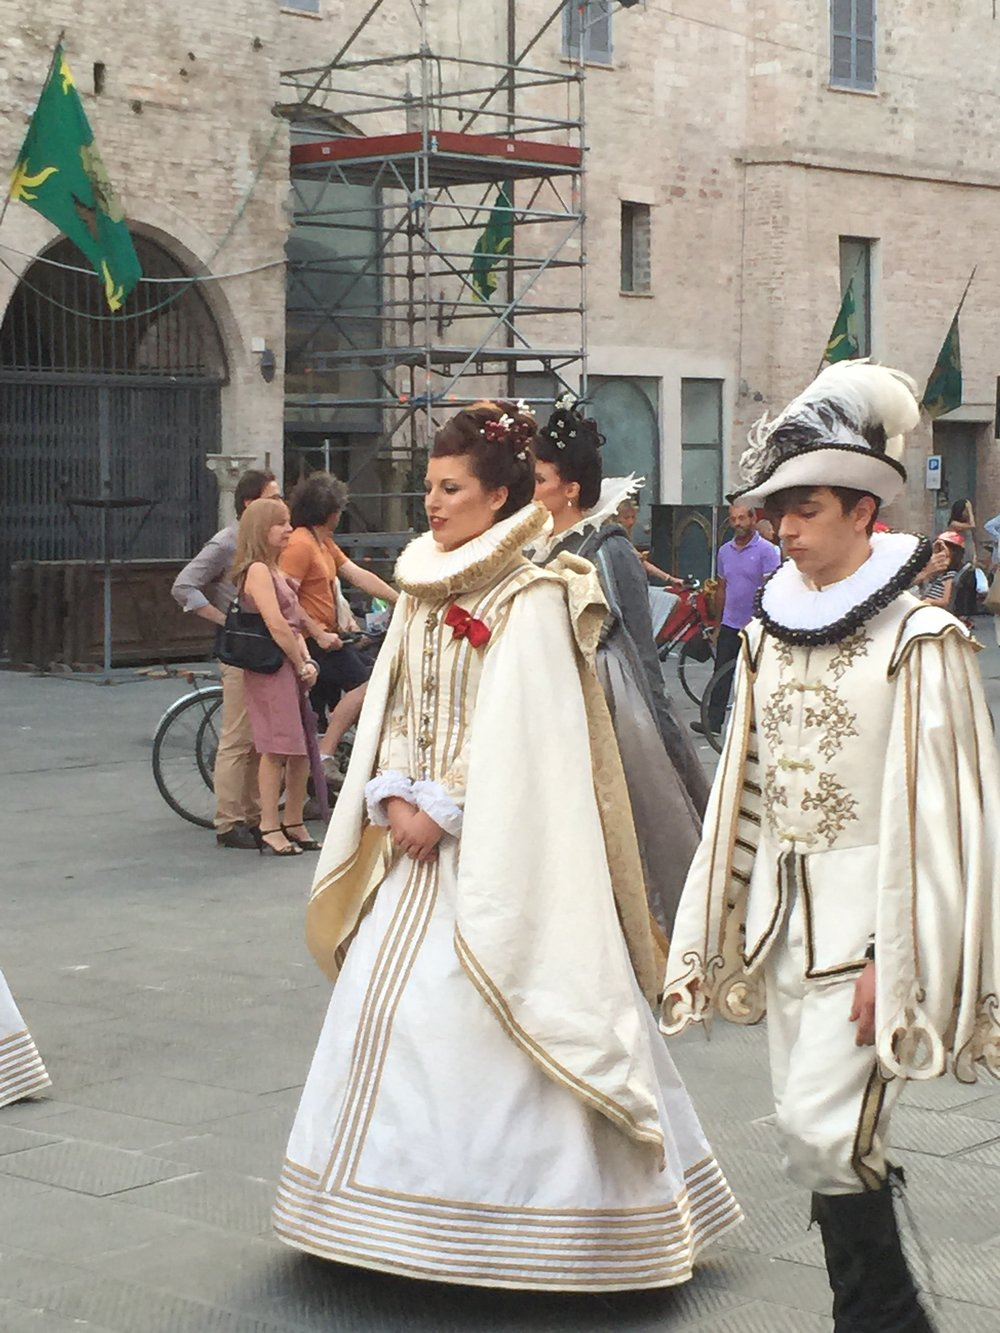 Costumes for the Giostra della Quintana in Foligno!